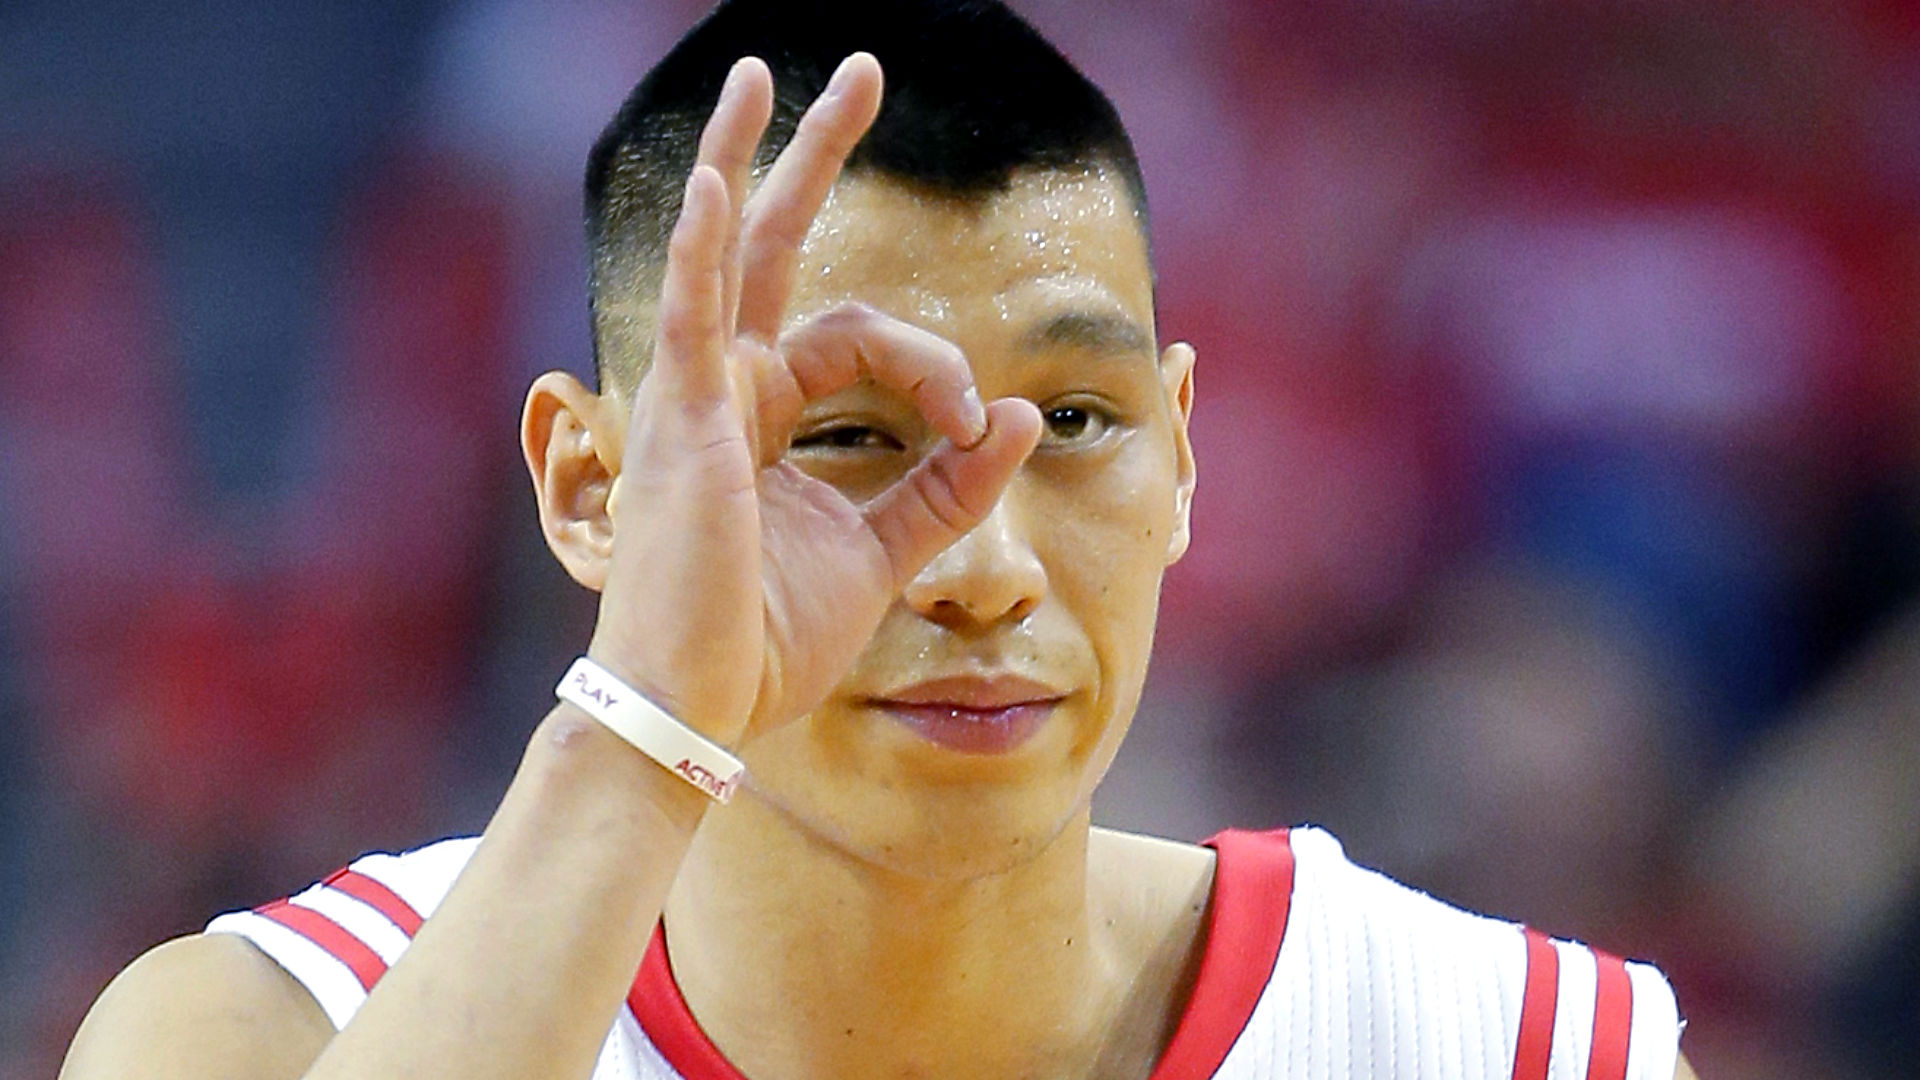 Jeremy Lin: Jeremy Lin On Failure, Food, And Free Time